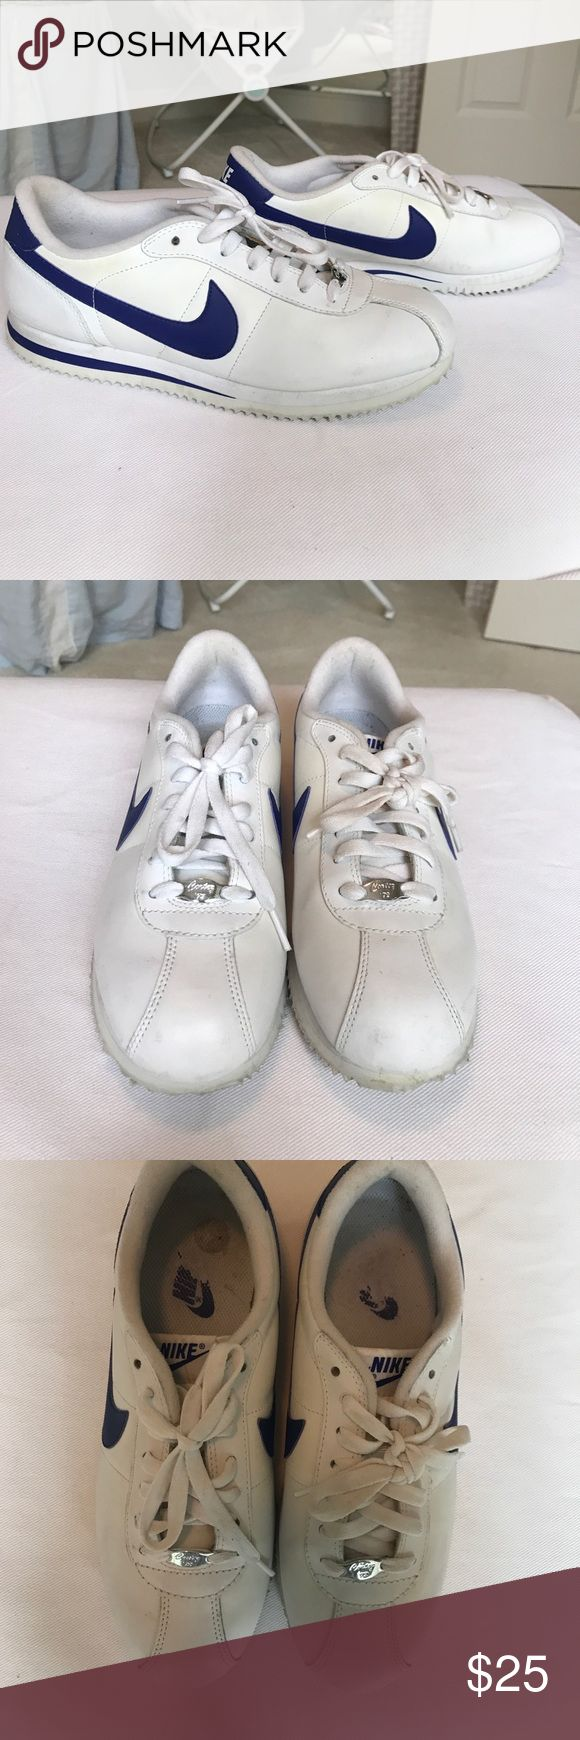 Nike Cortez '72 Nike Cortez '72 white with royal blue detail. Size 9. Worn a couple of times. Slight discoloration from sitting in the closet, could be brand new with some TLC. Does not come with box Nike Shoes Sneakers